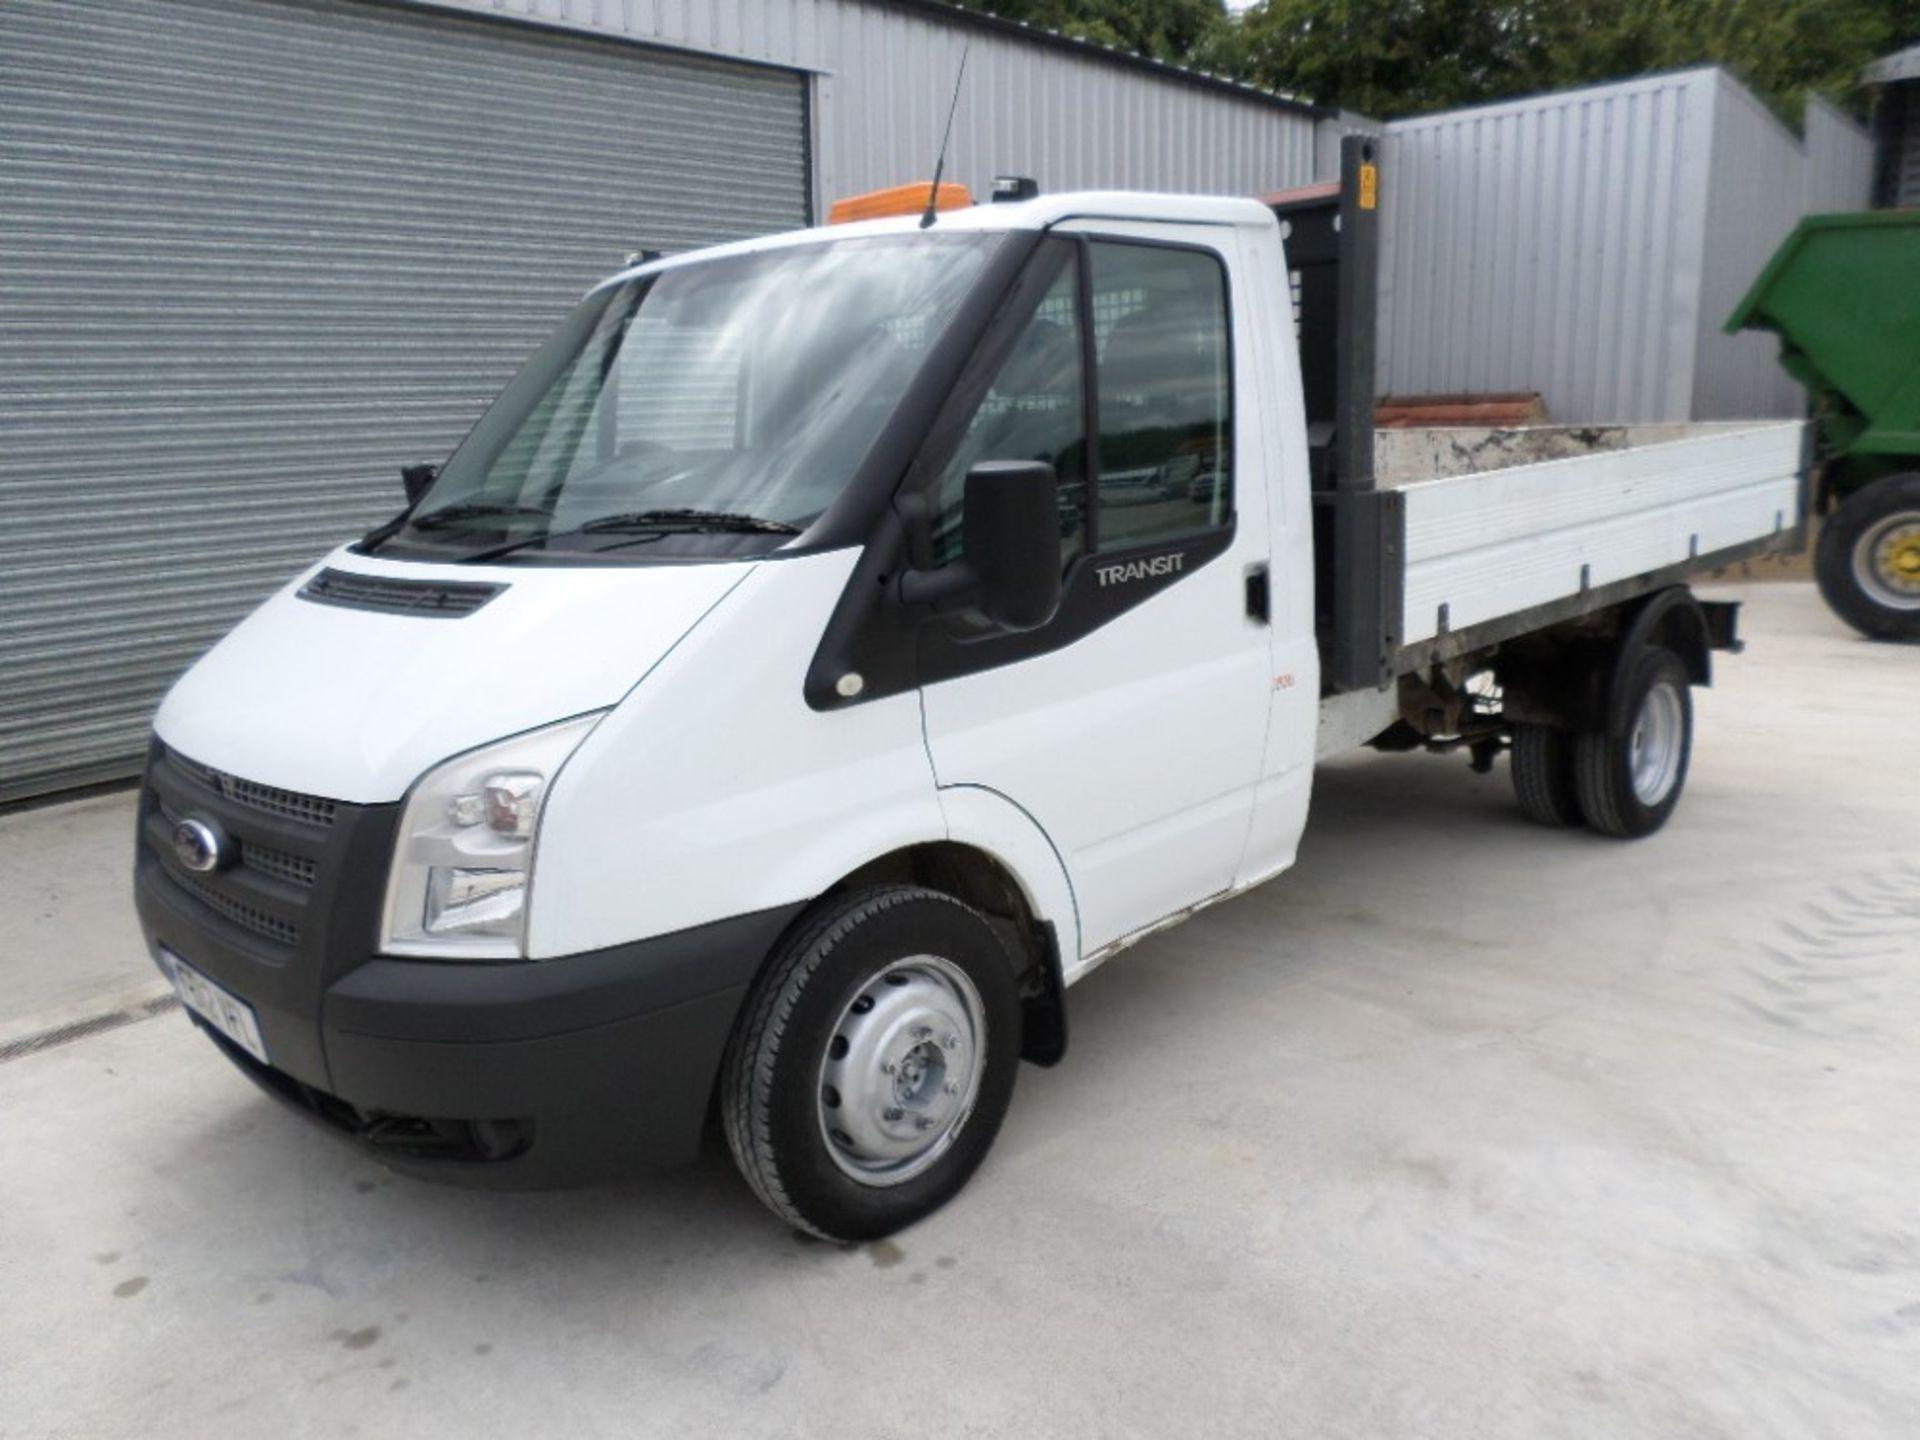 12 reg FORD TRANSIT 2.2 125 T340 MWB S/CAB TIPPER (LOCATION SHEFFIELD) 1ST REG 07/12, 130556M, V5